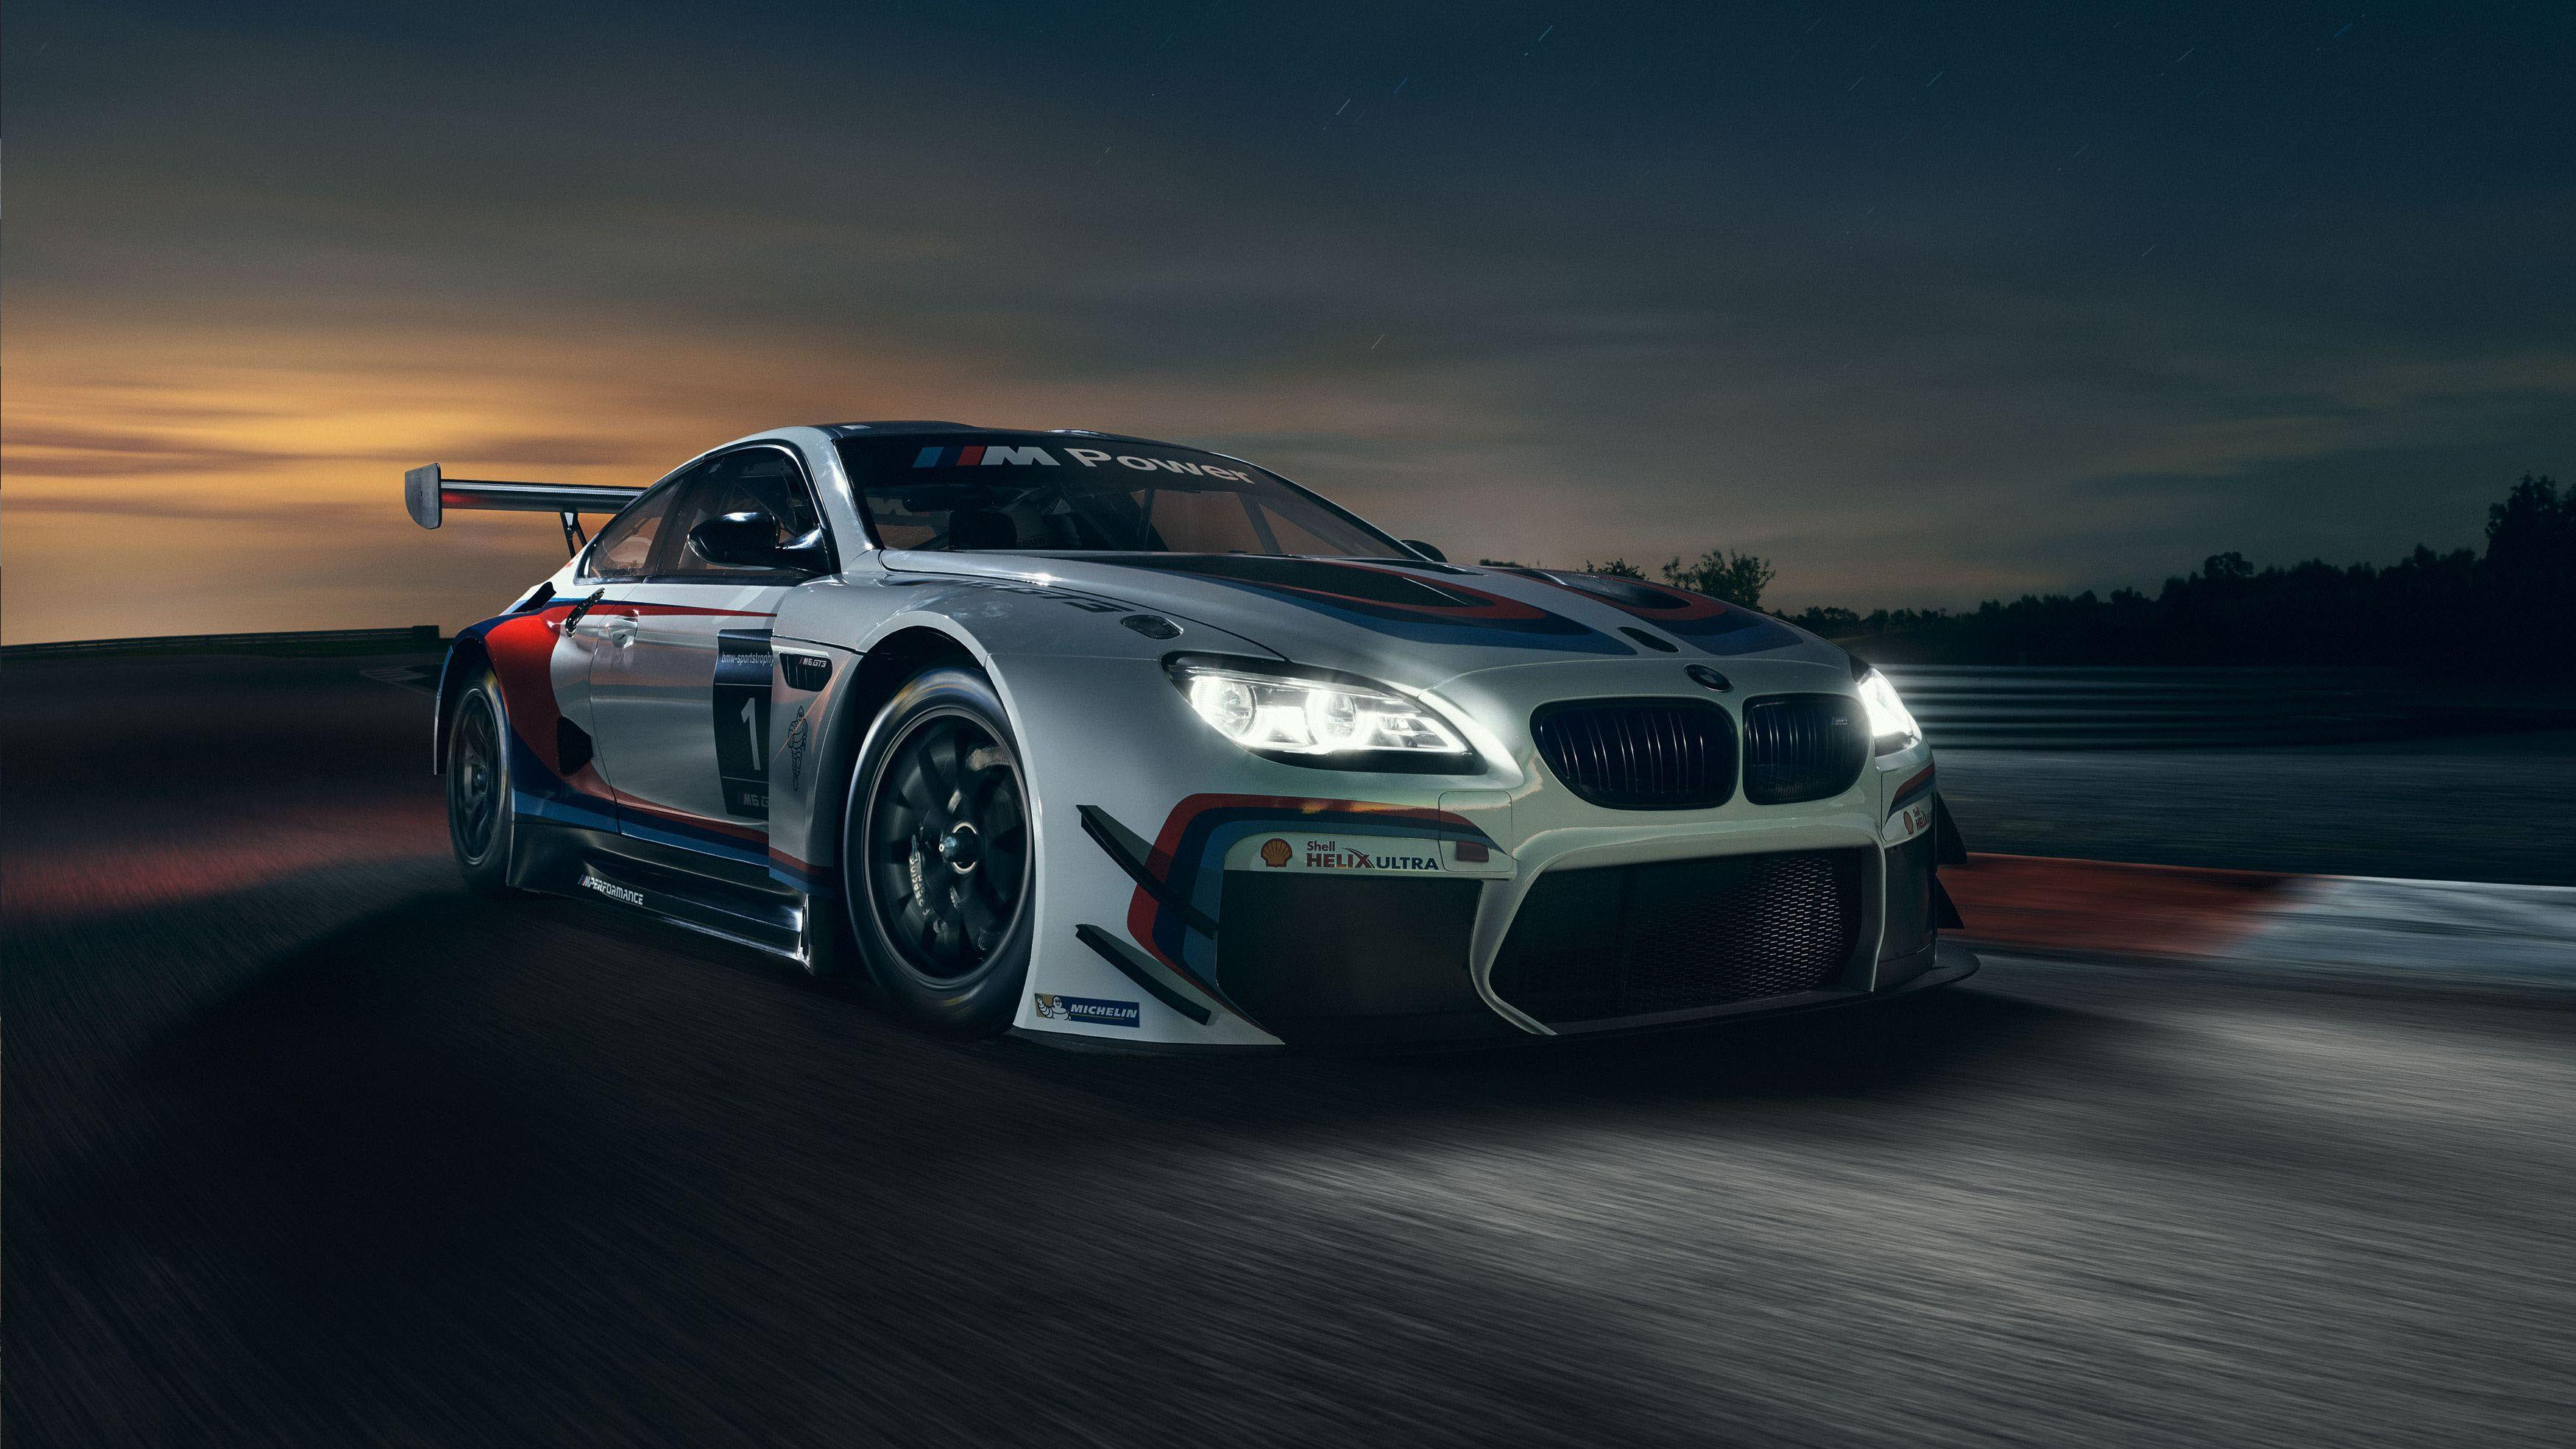 Bmw m power racing track wallpaper hd car wallpapers id 8085